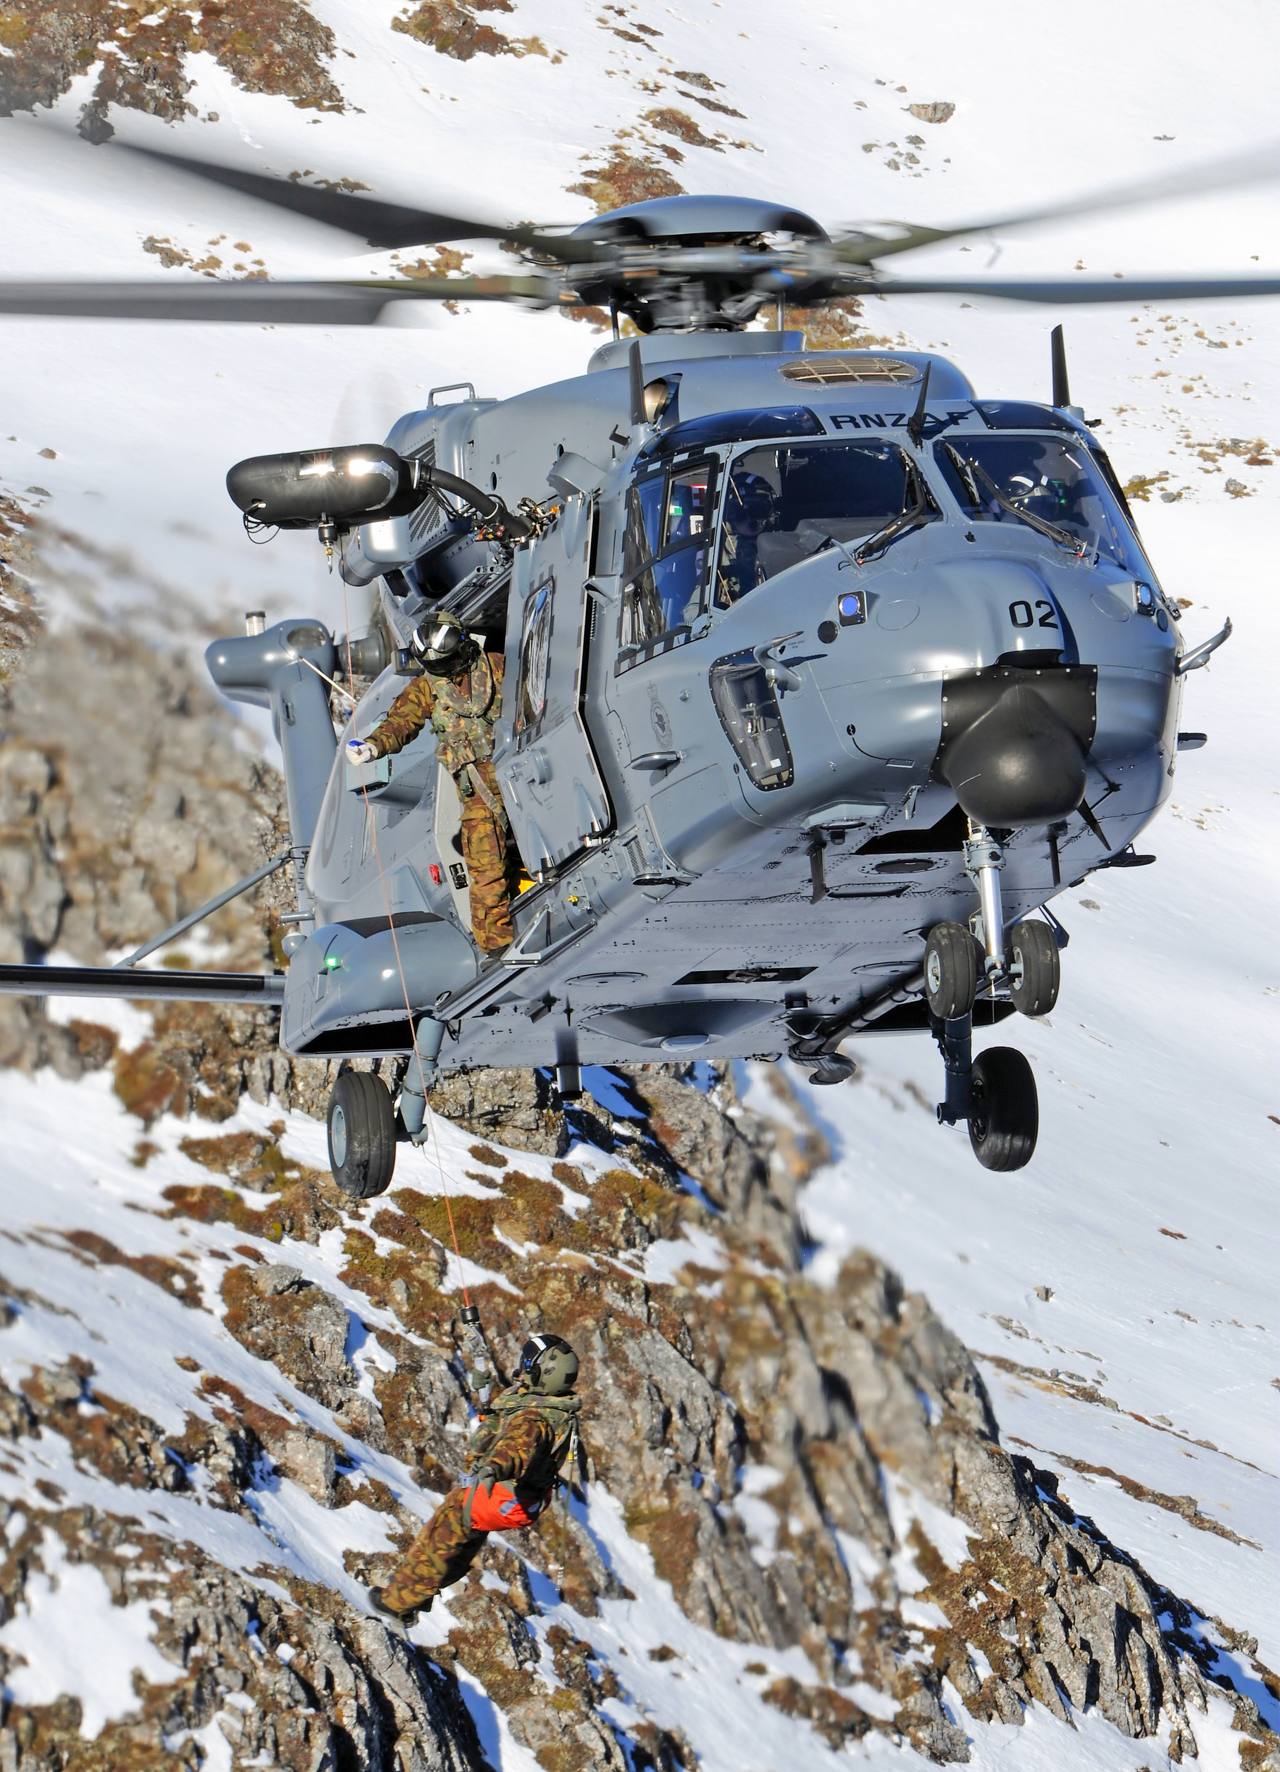 An NH90 helicopter operated by Royal New Zealand Air Force.